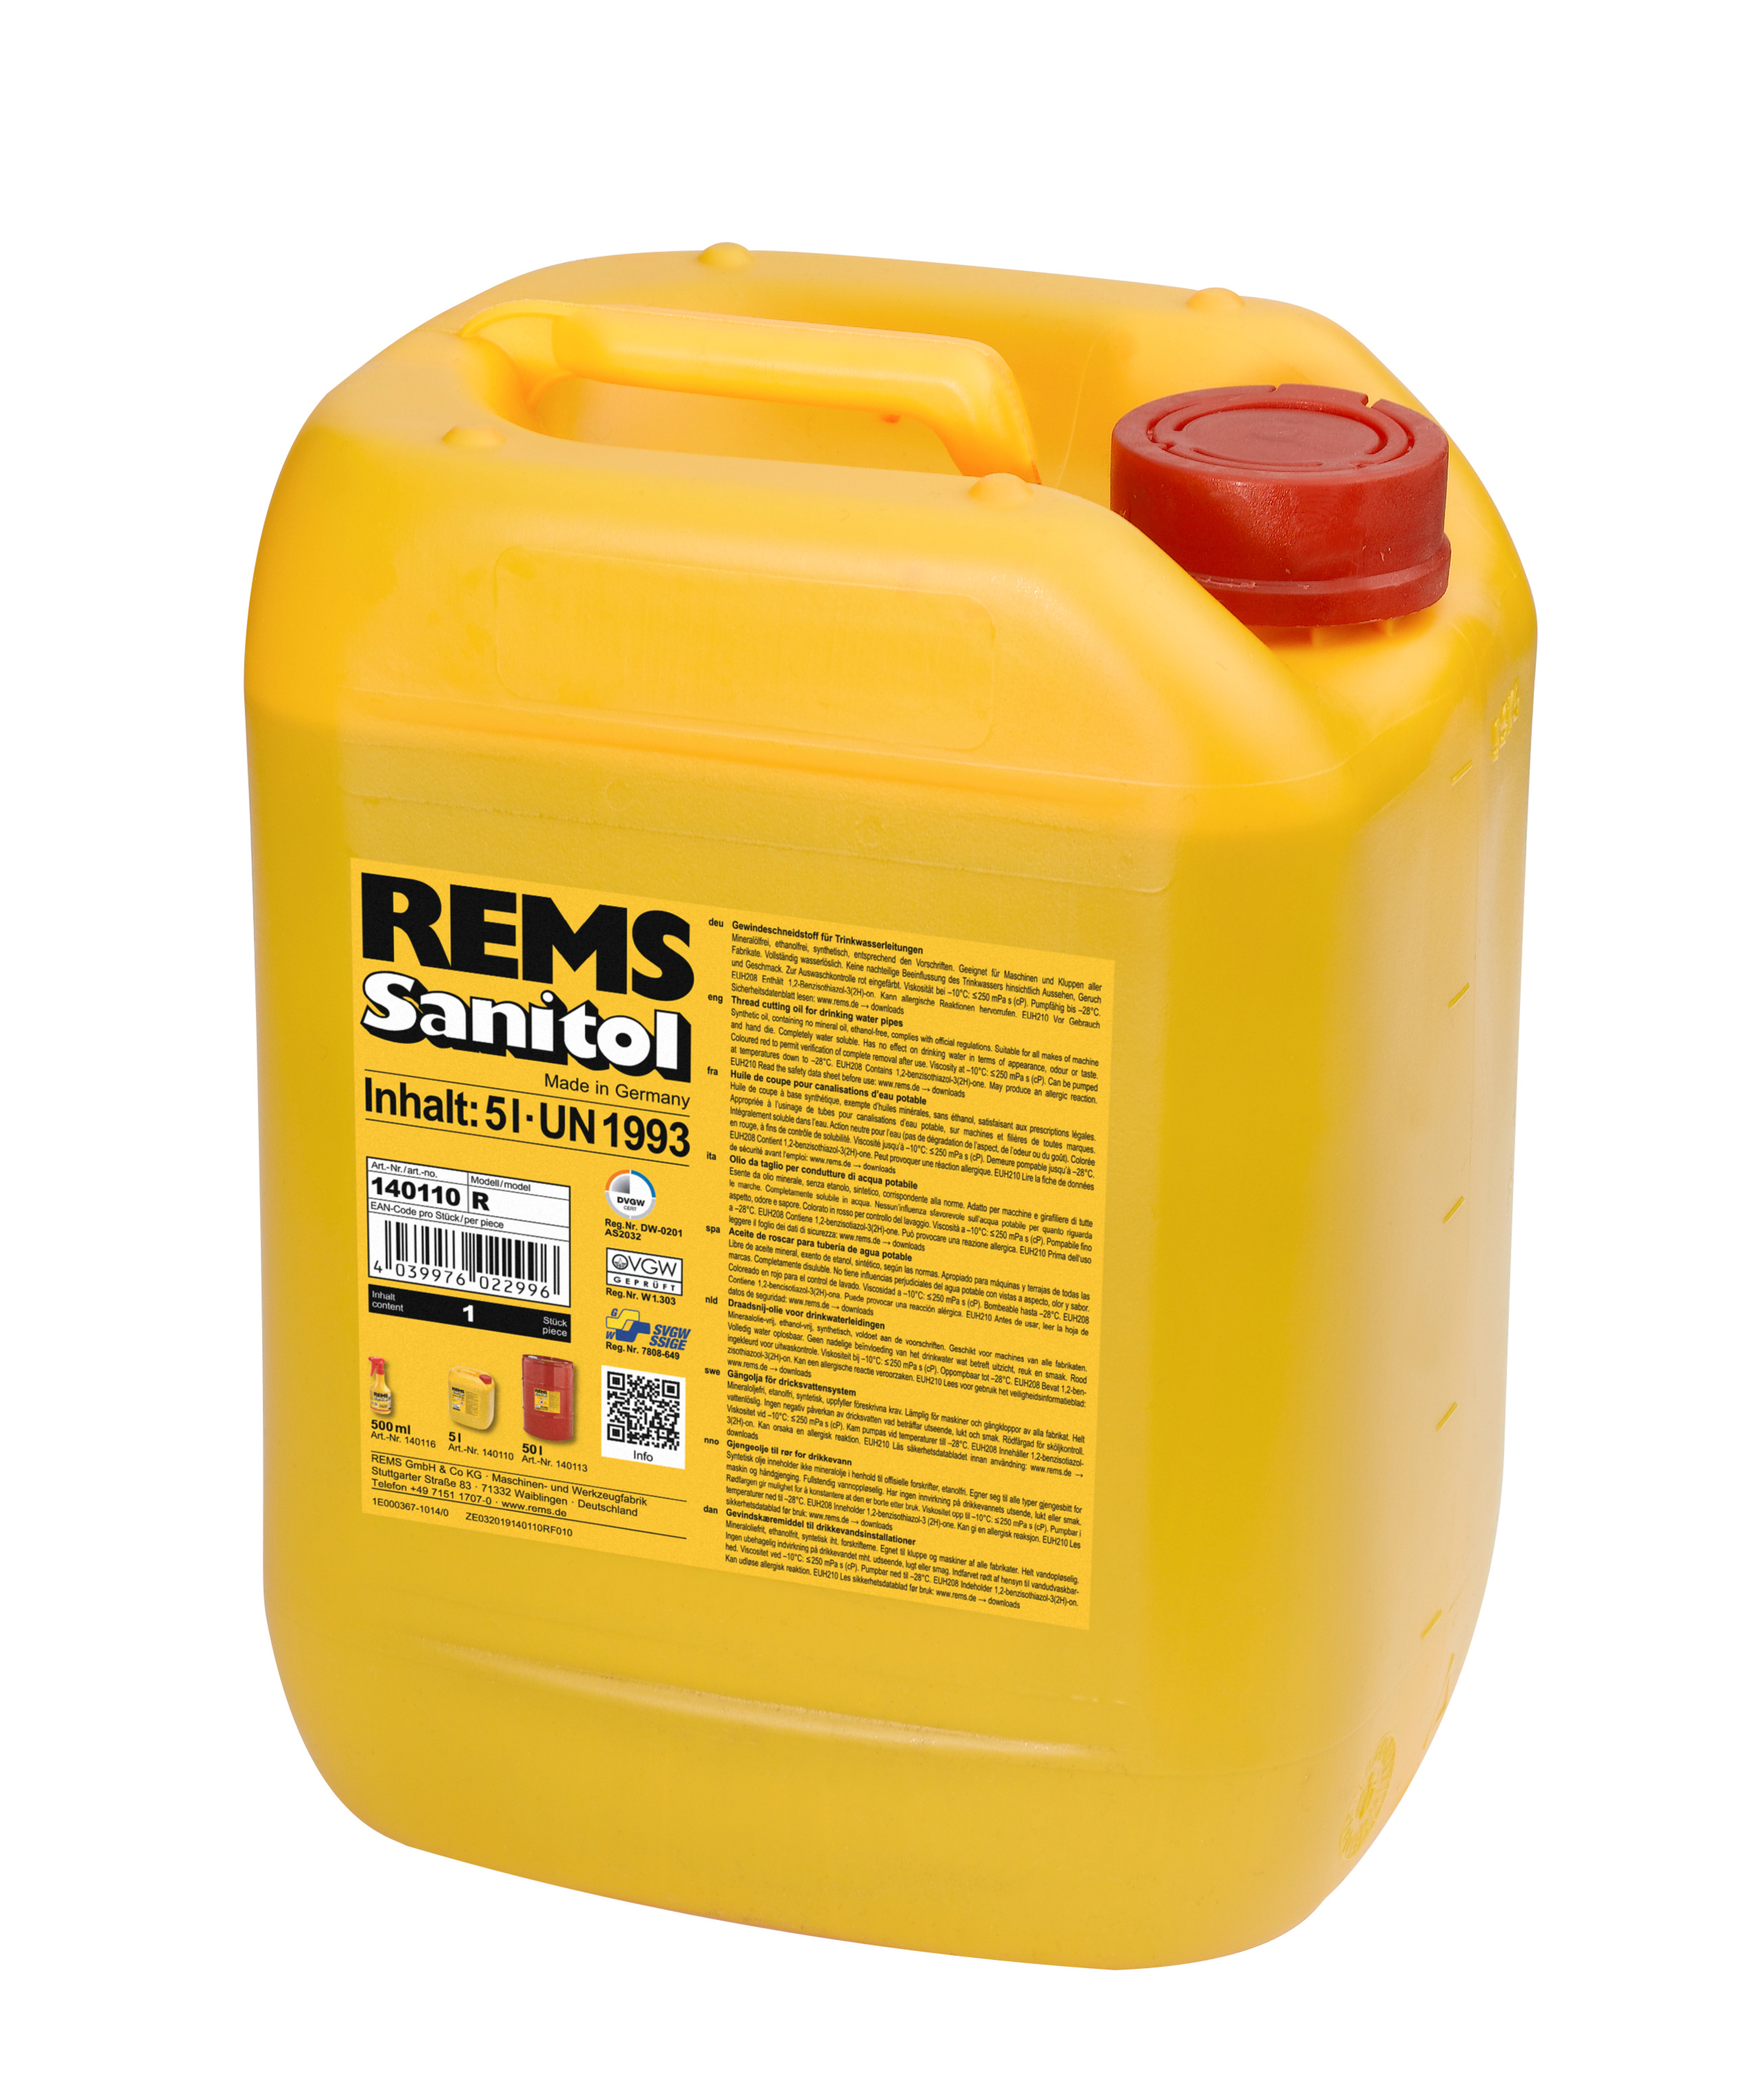 <br/>REMS Sanitol